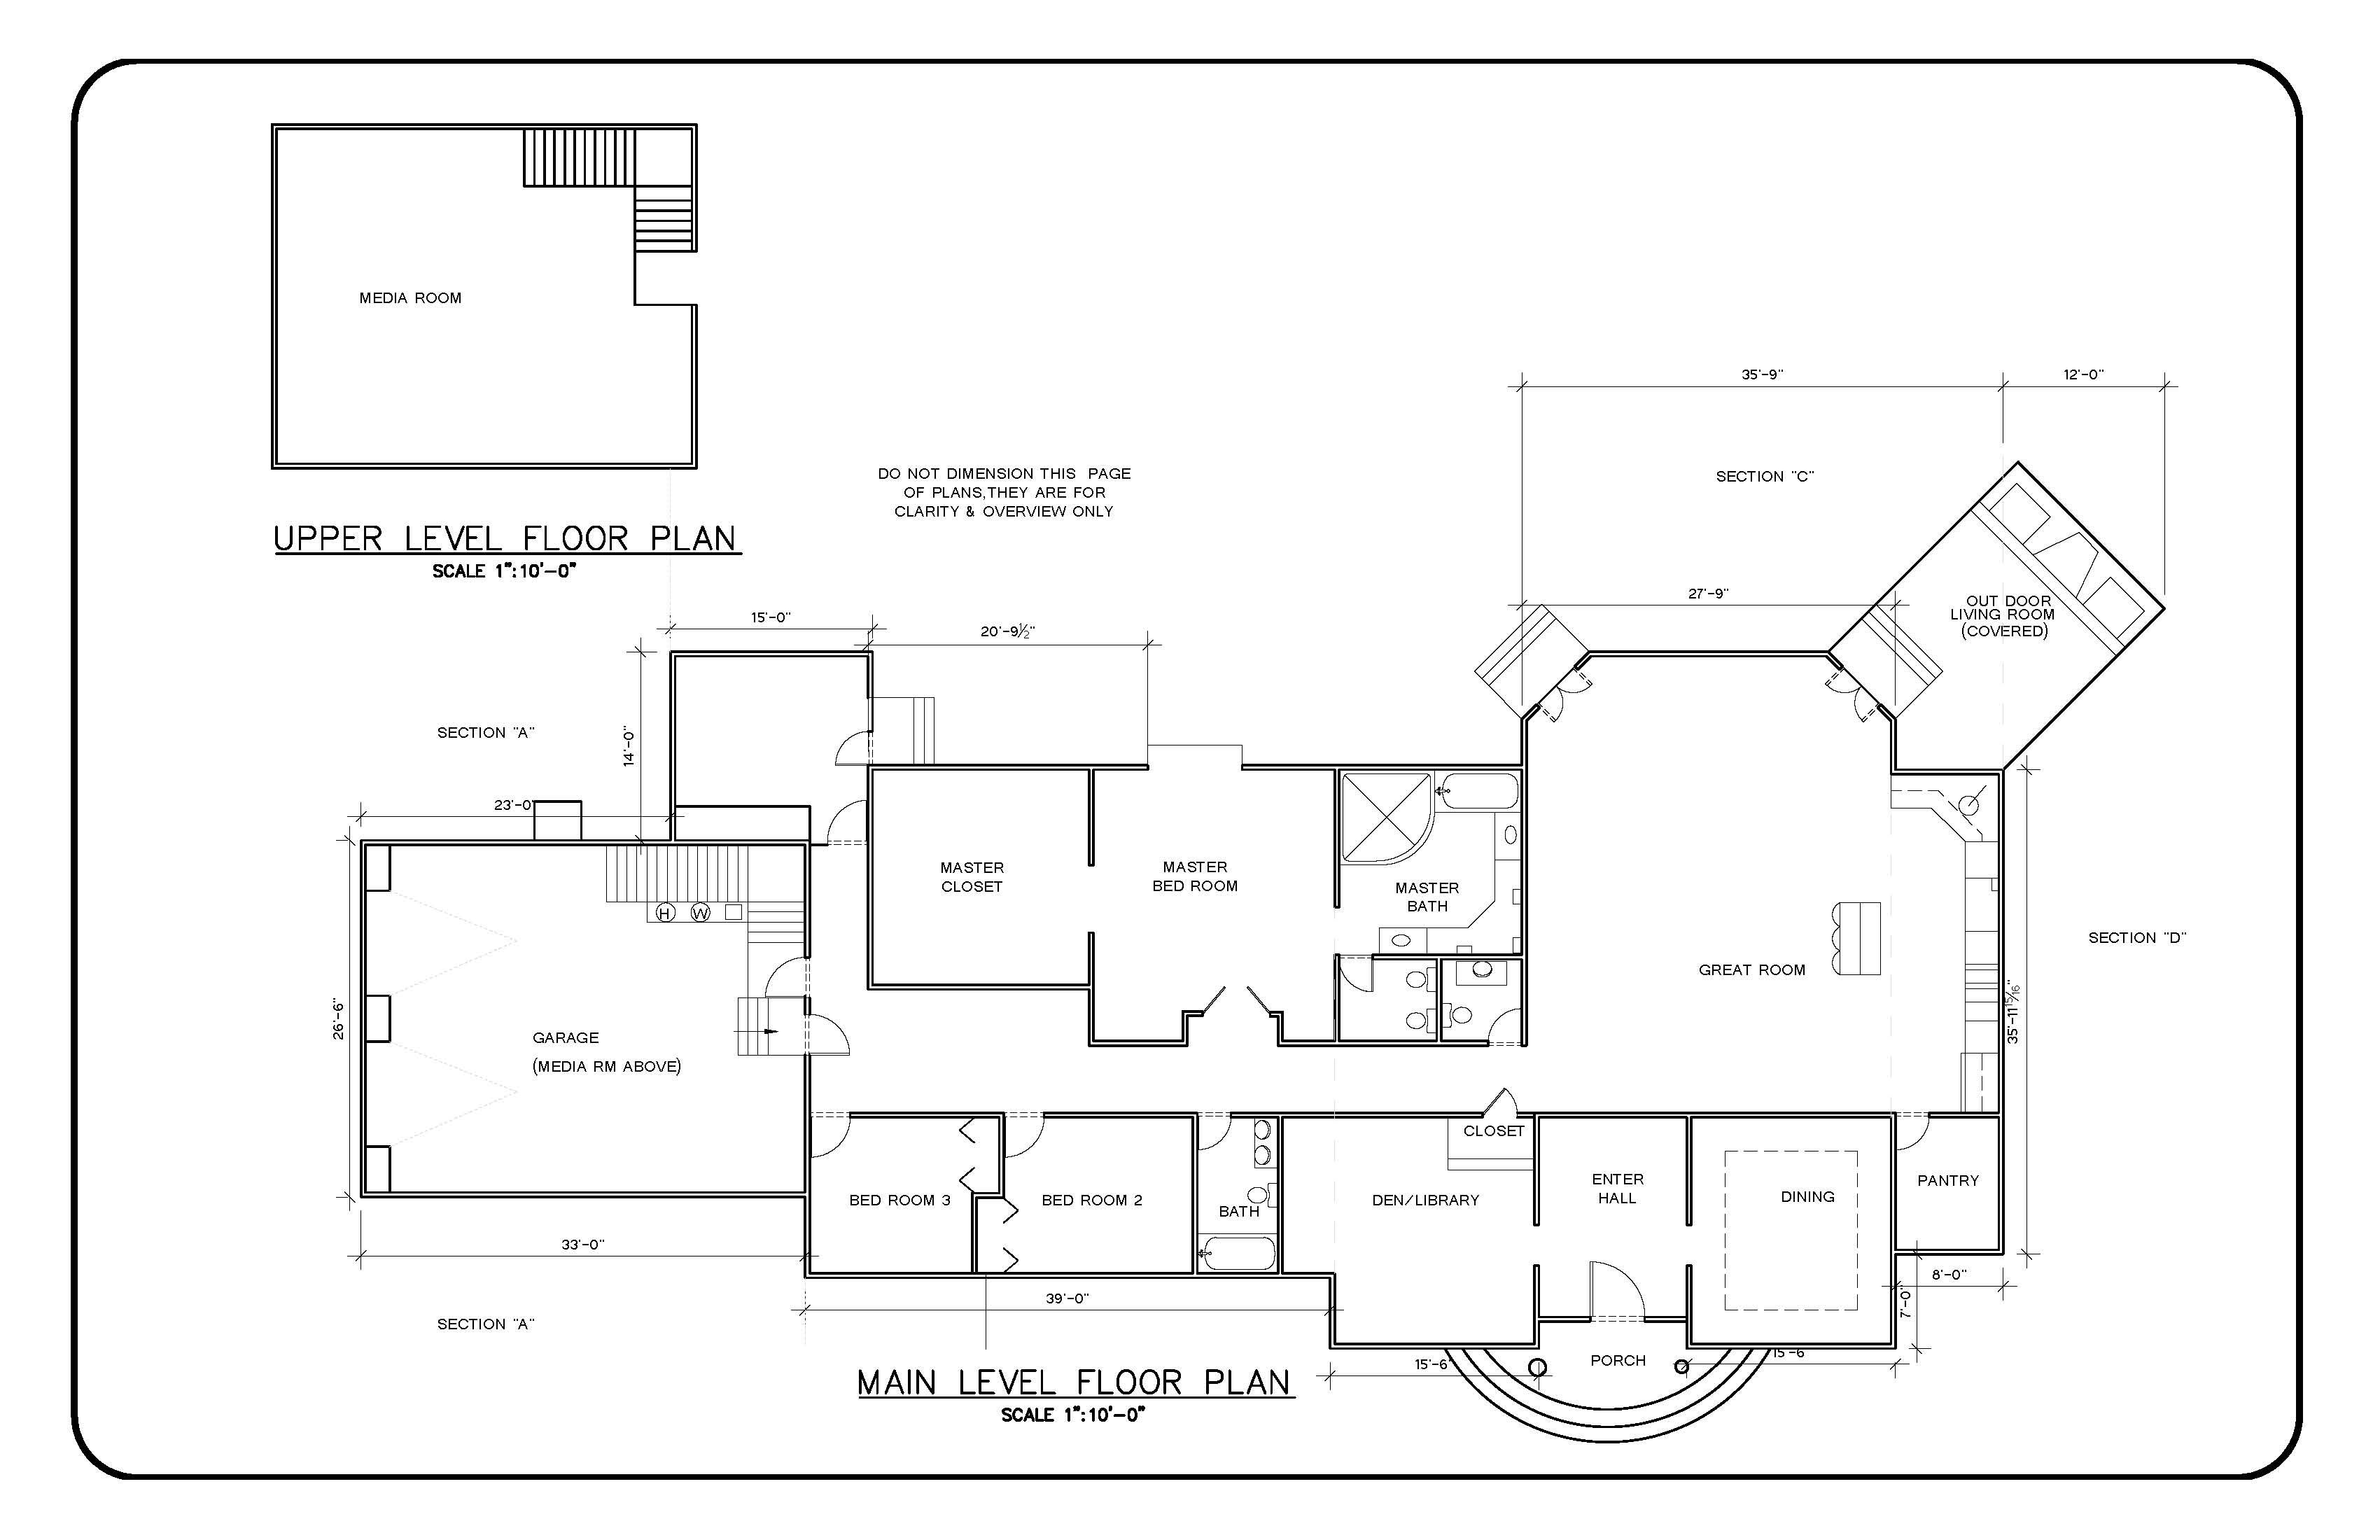 Architectural Floor Plan, Architectural Drawings